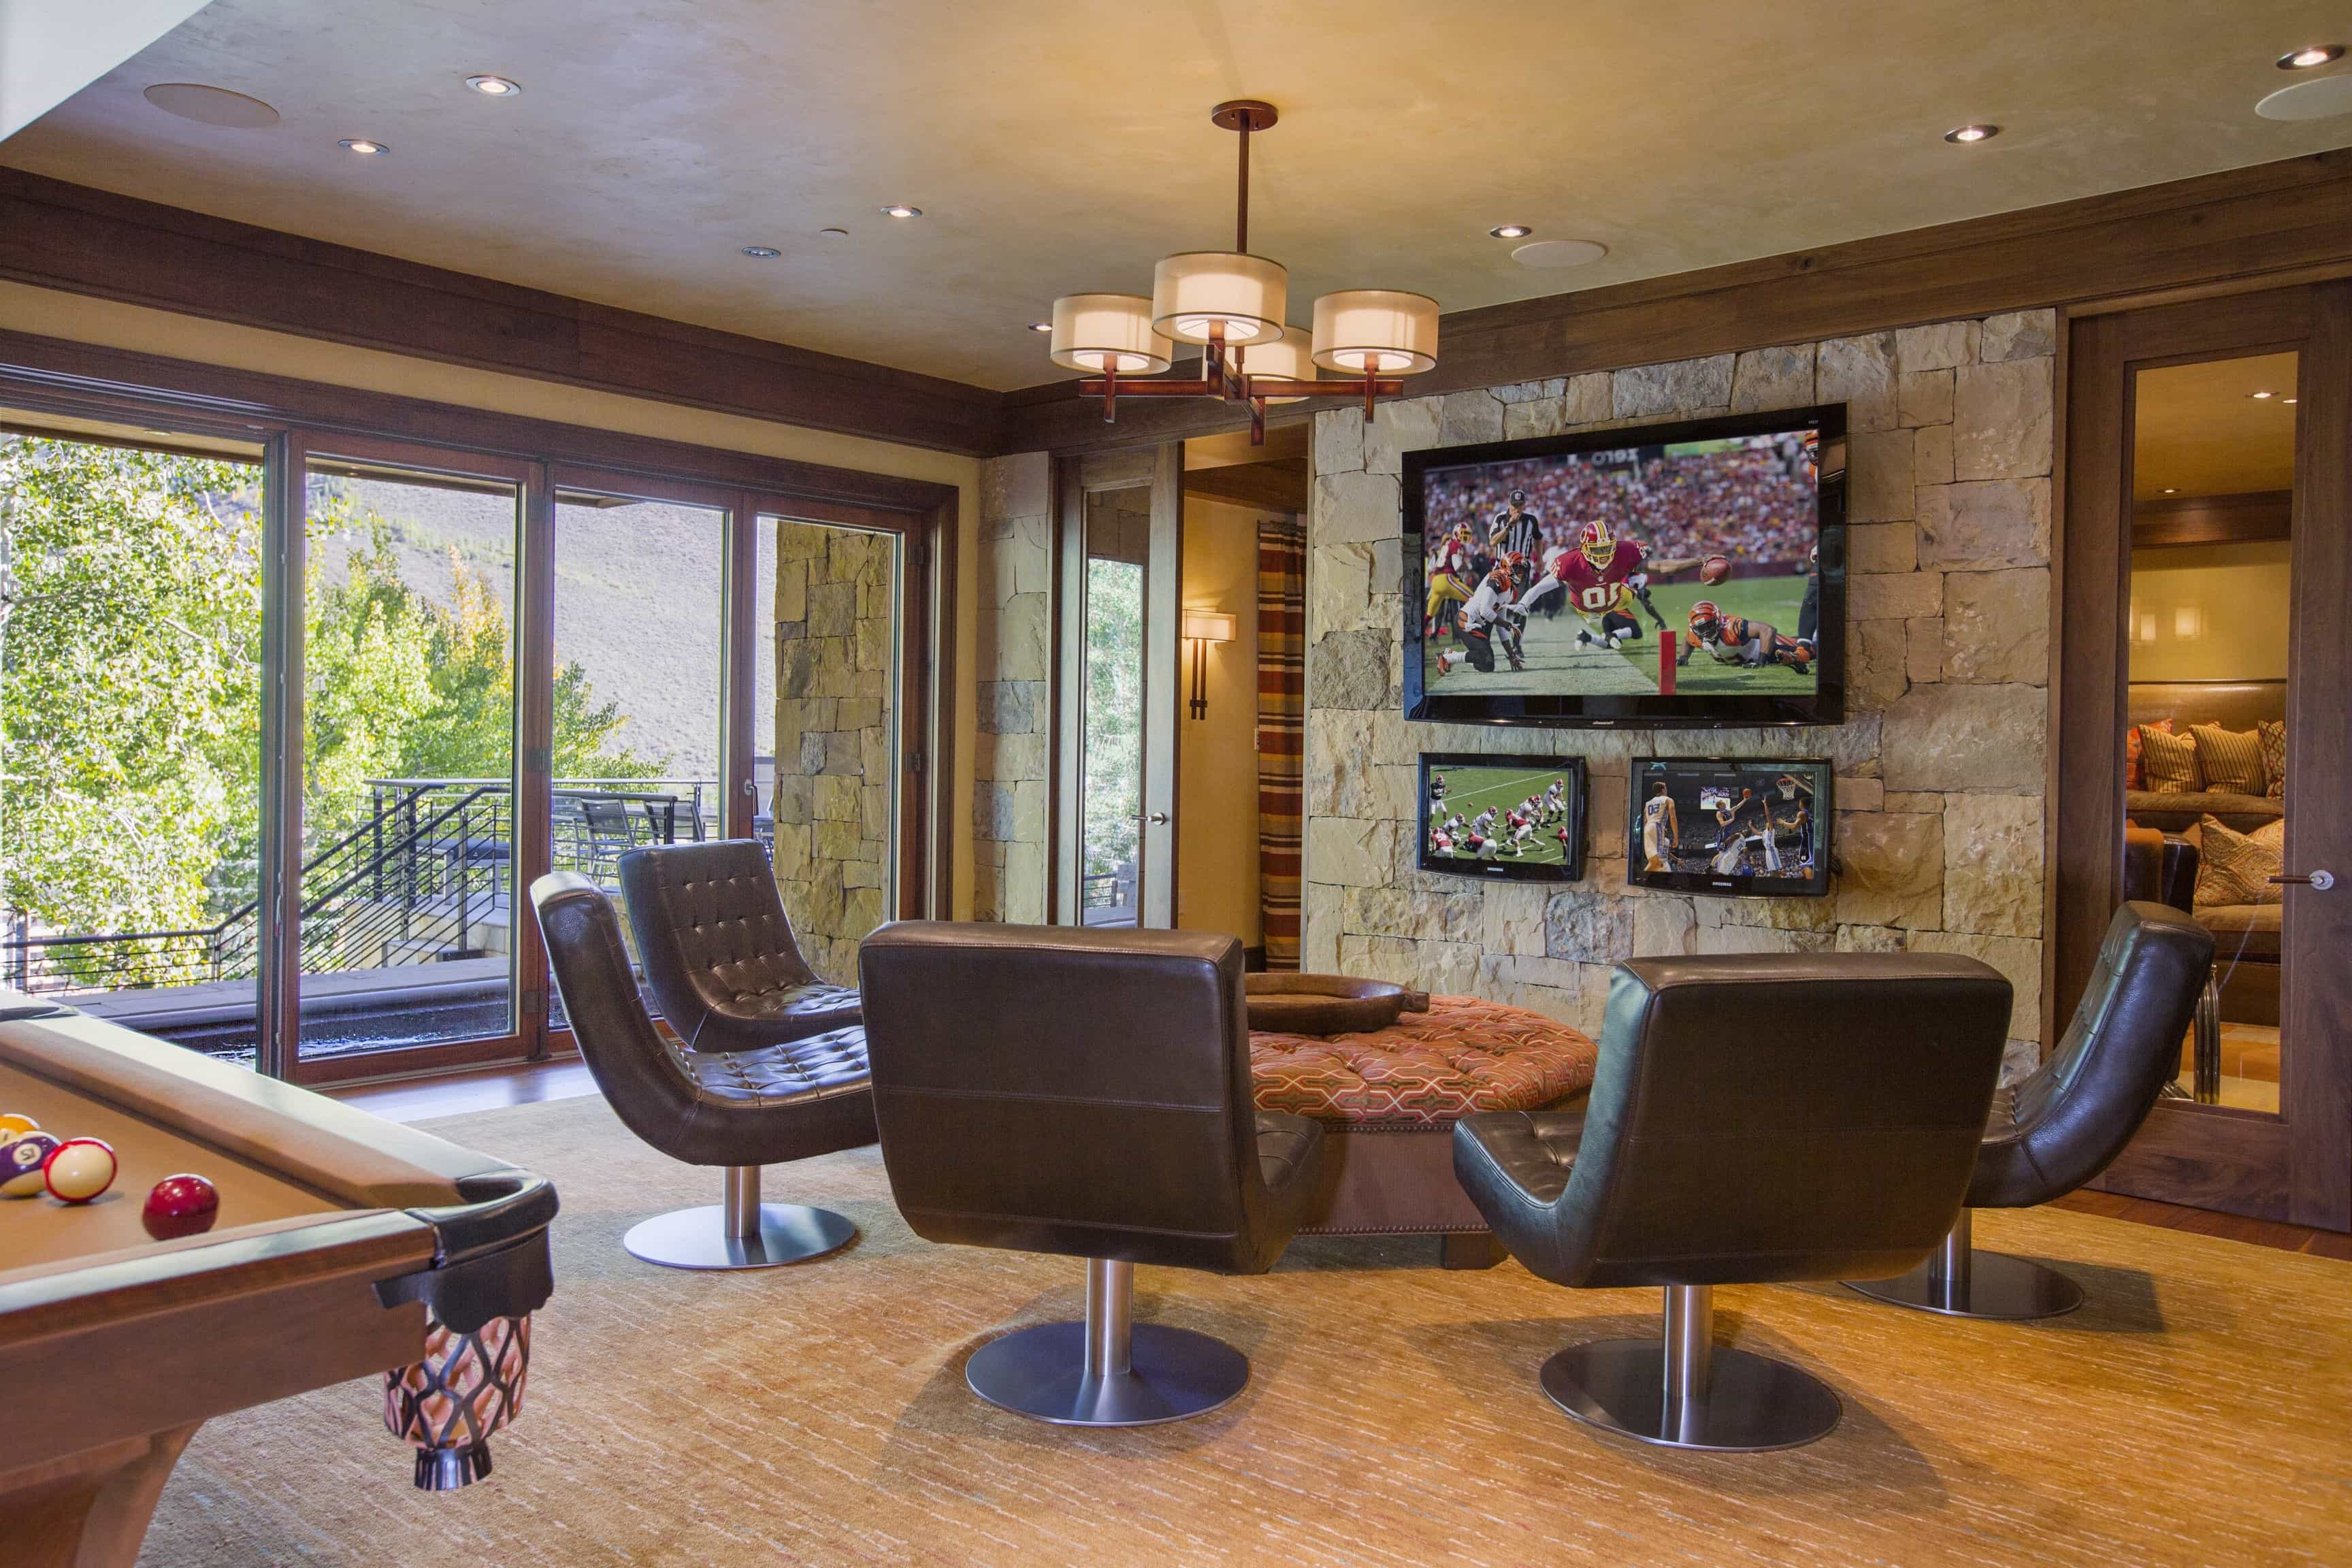 Featured Image of Craftsman Style Entertainment Room With Modern Leather Chairs